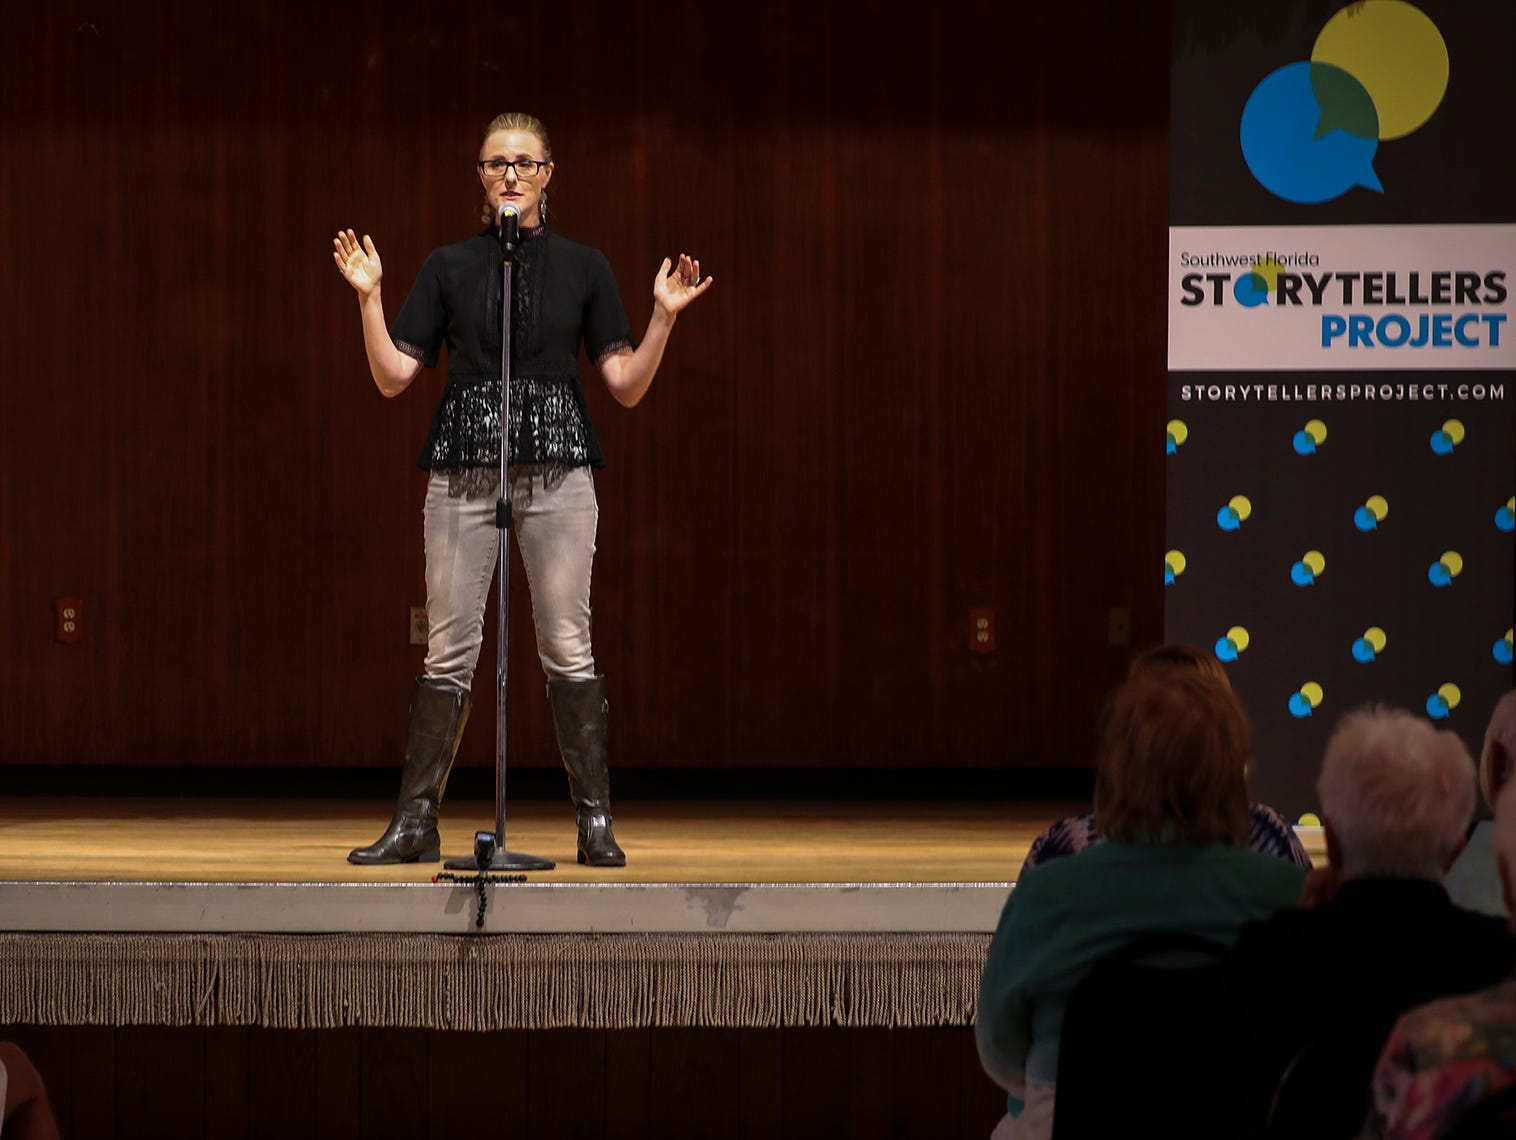 SW Florida Storytellers events will blend the authenticity of storytelling as an art form with the truthfulness, community-building and empowerment that's at the heart of journalism.